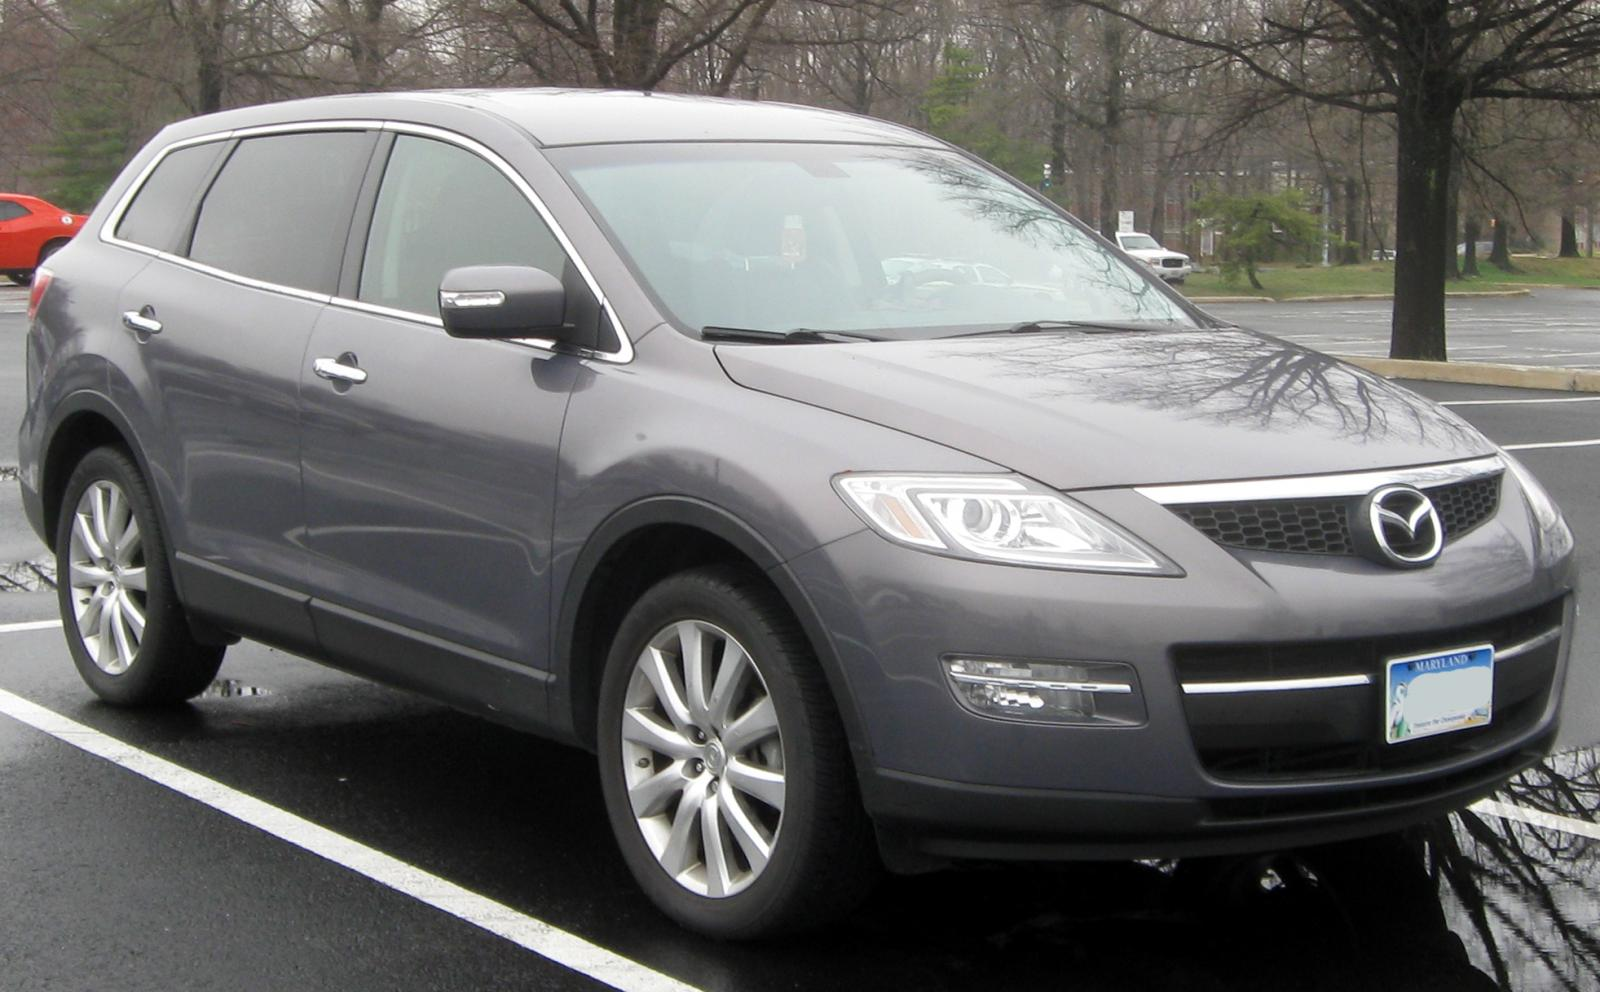 2011 mazda cx 9 information and photos zombiedrive. Black Bedroom Furniture Sets. Home Design Ideas